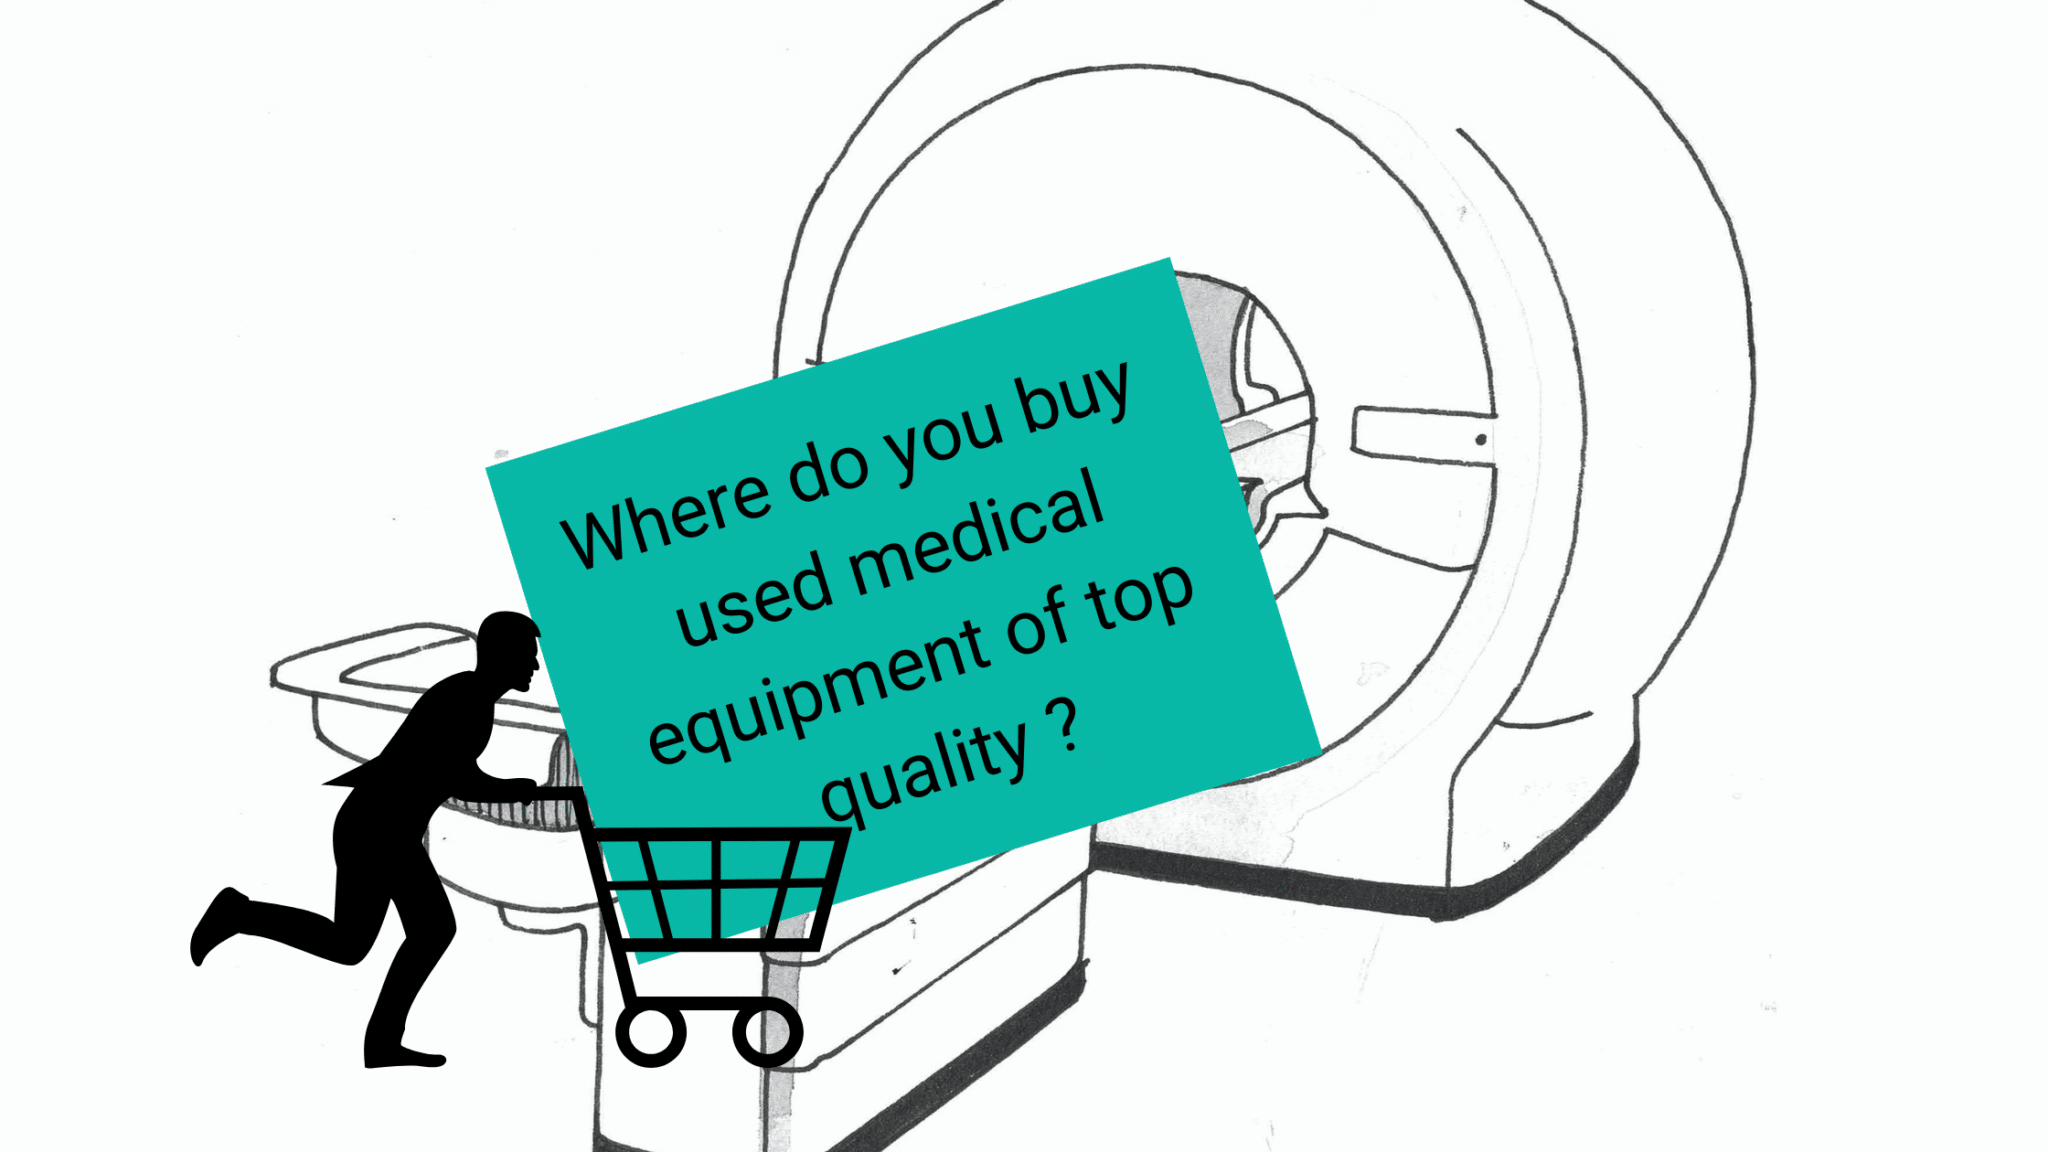 H1: Where do you buy used medical equipment of top quality?